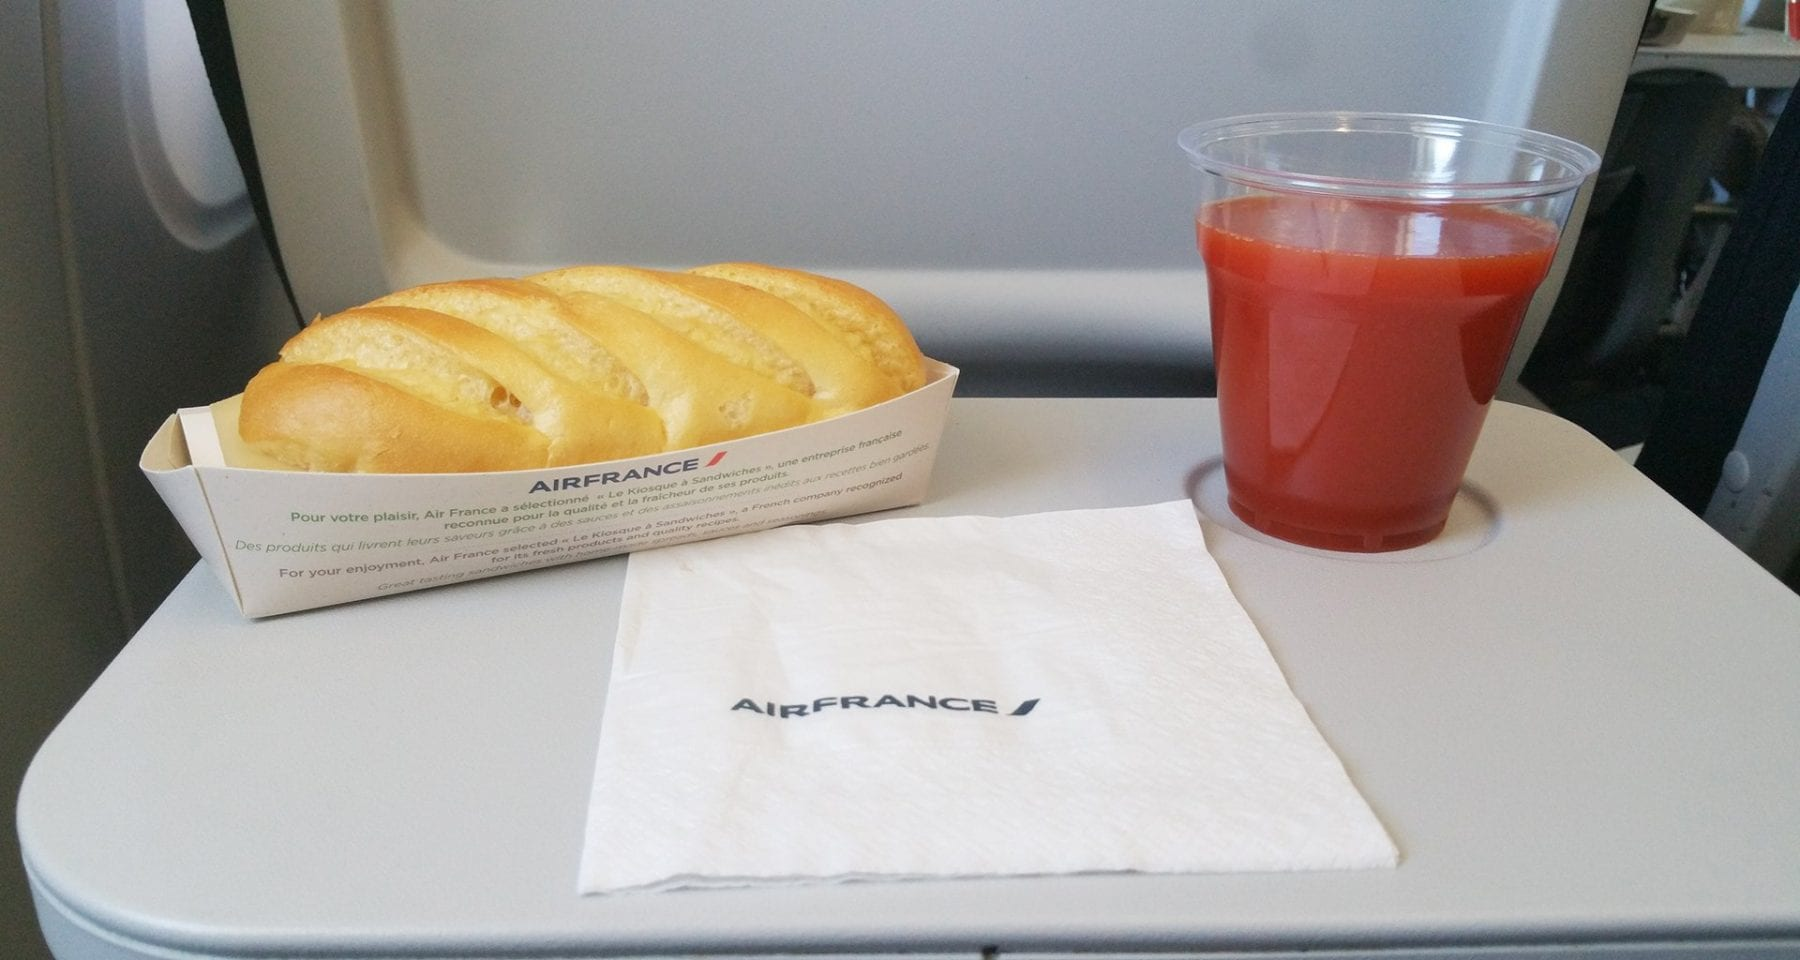 Air france Europe economy class baguette